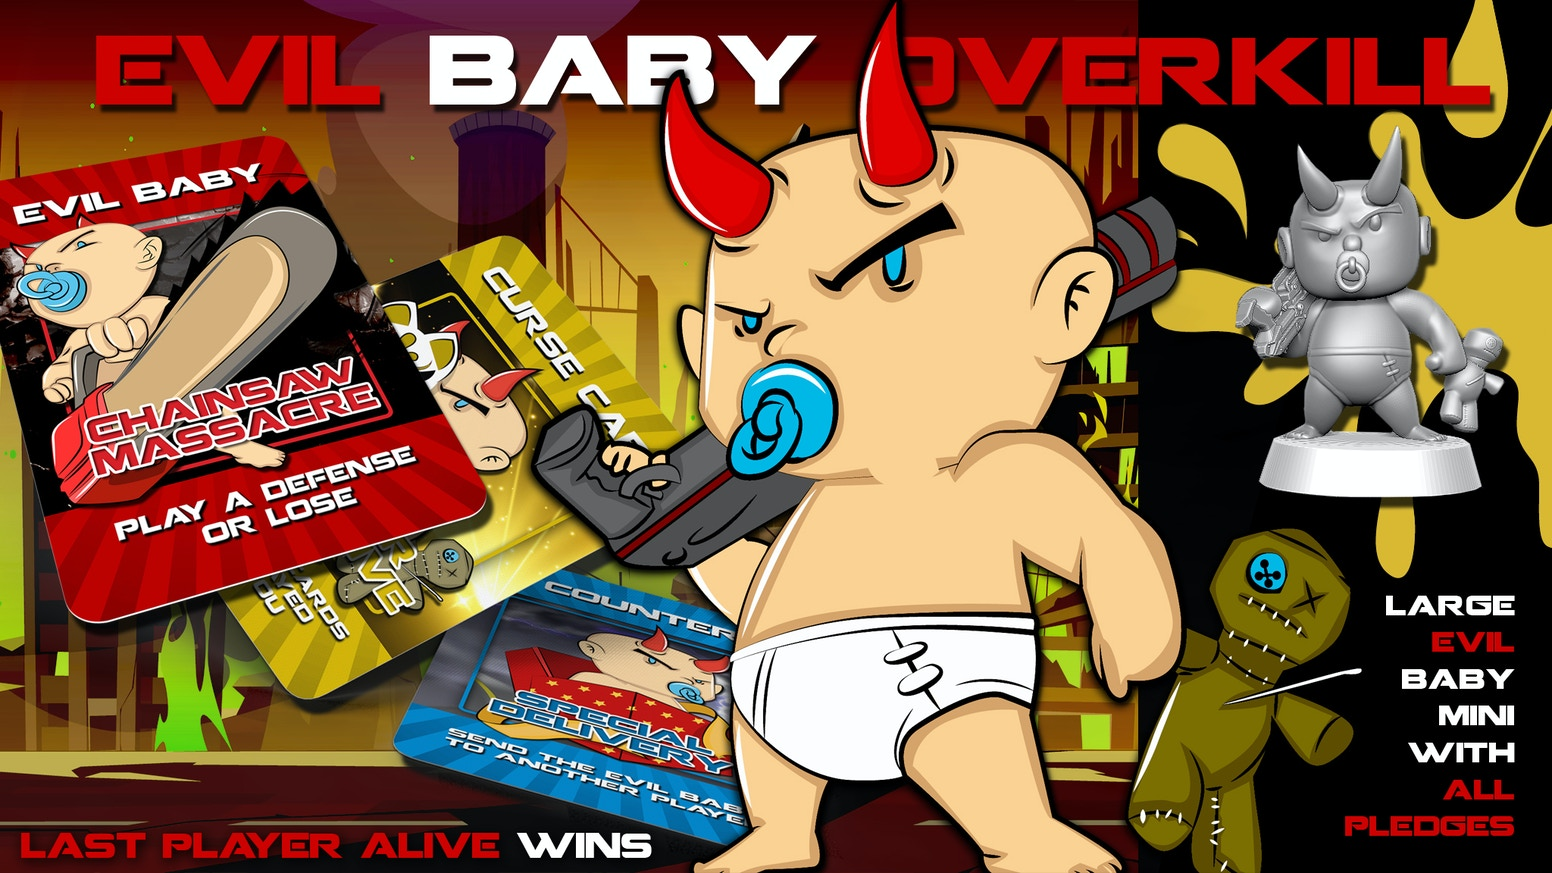 Stack defenses & survive Evil Baby attacks to be the last player alive & win the game.